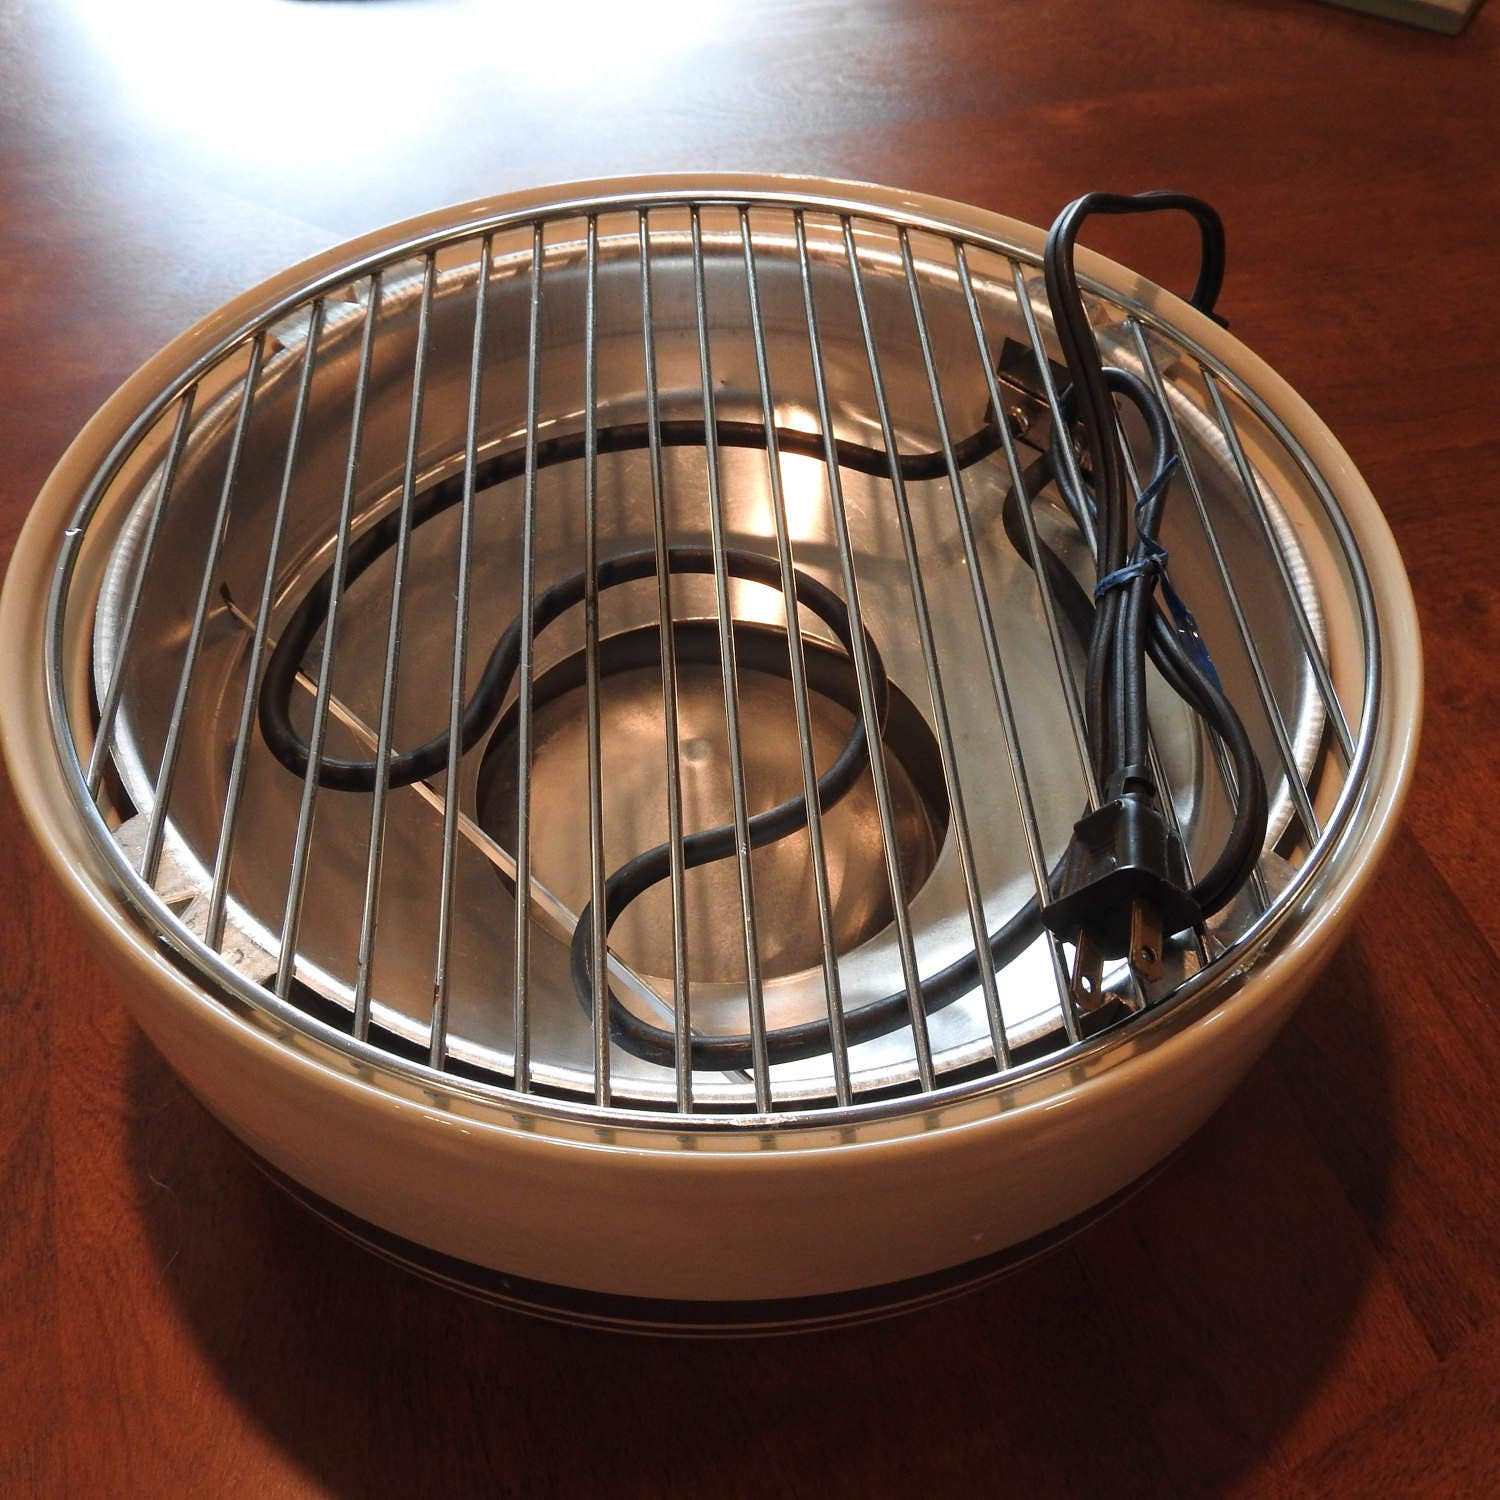 Vintage Ceramic Electric Indoor Grill Char B Que Porcelain